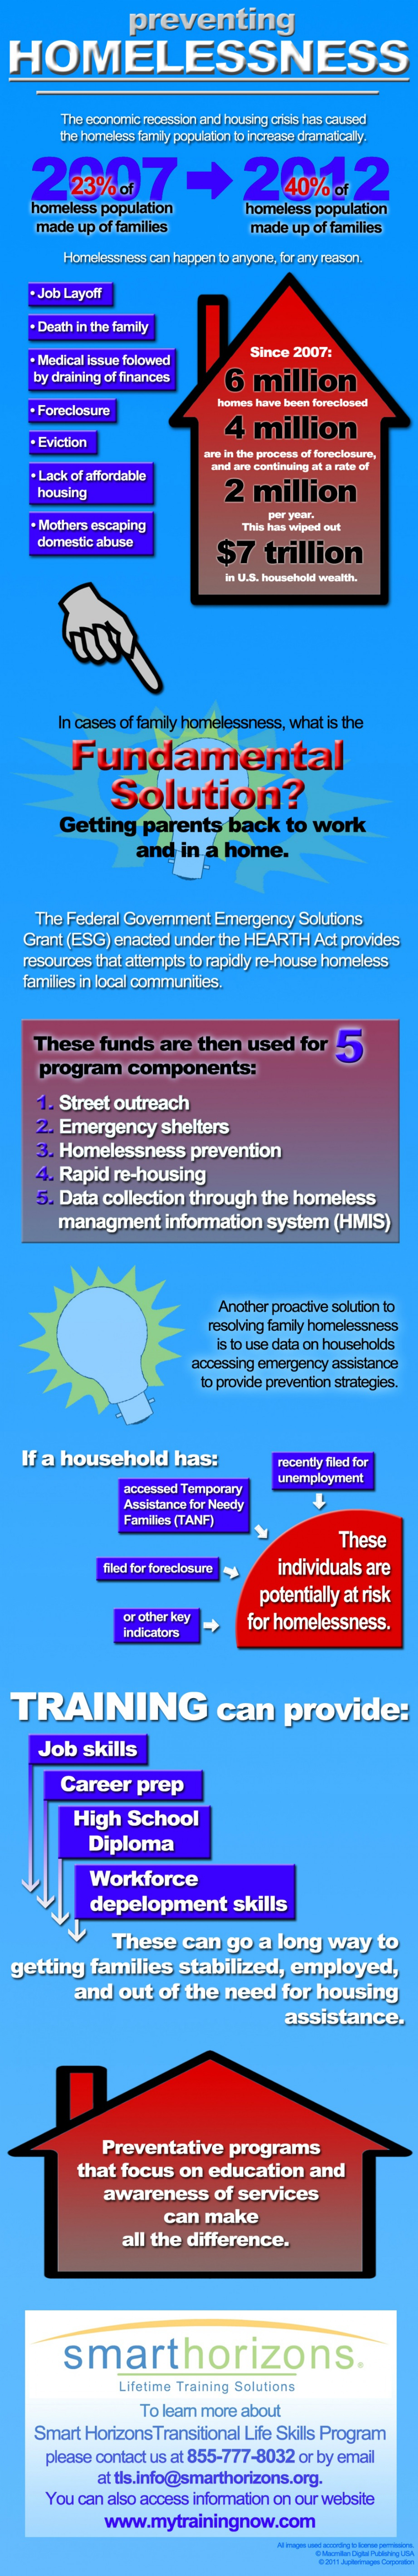 Preventing Homelessness Infographic